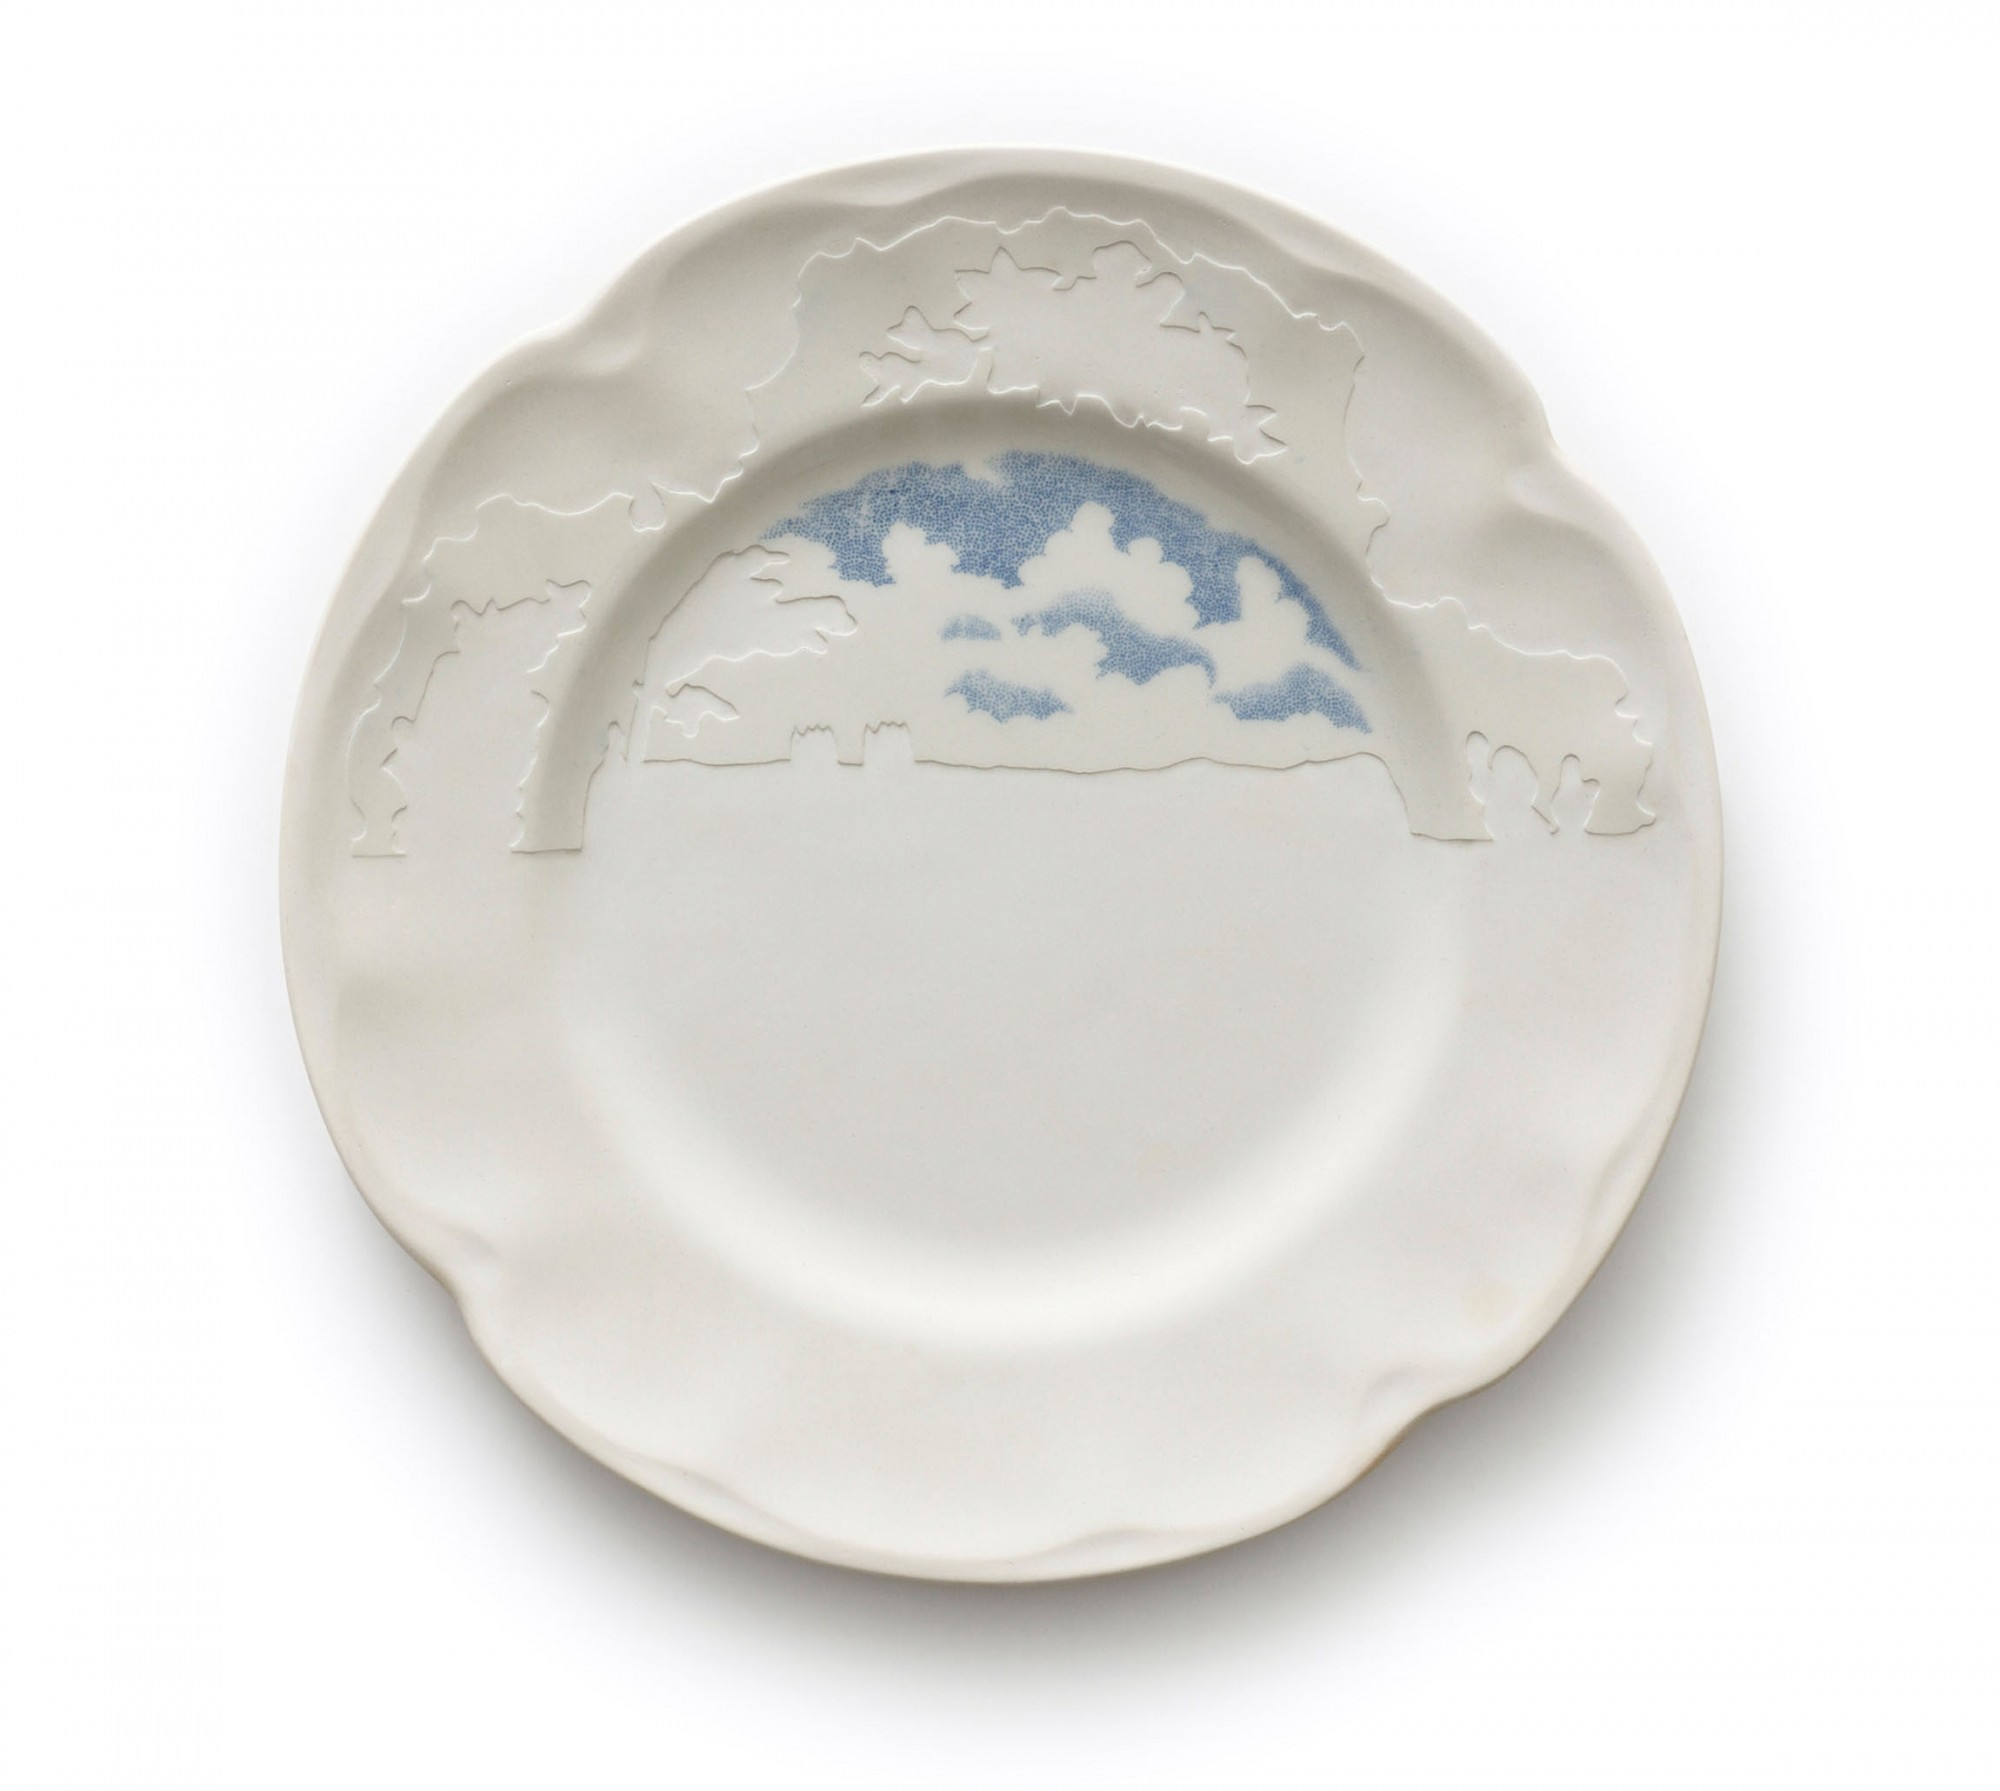 From the series Under Blue Skies, 2009. Reworked second hand ceramics. Ø 22 cm